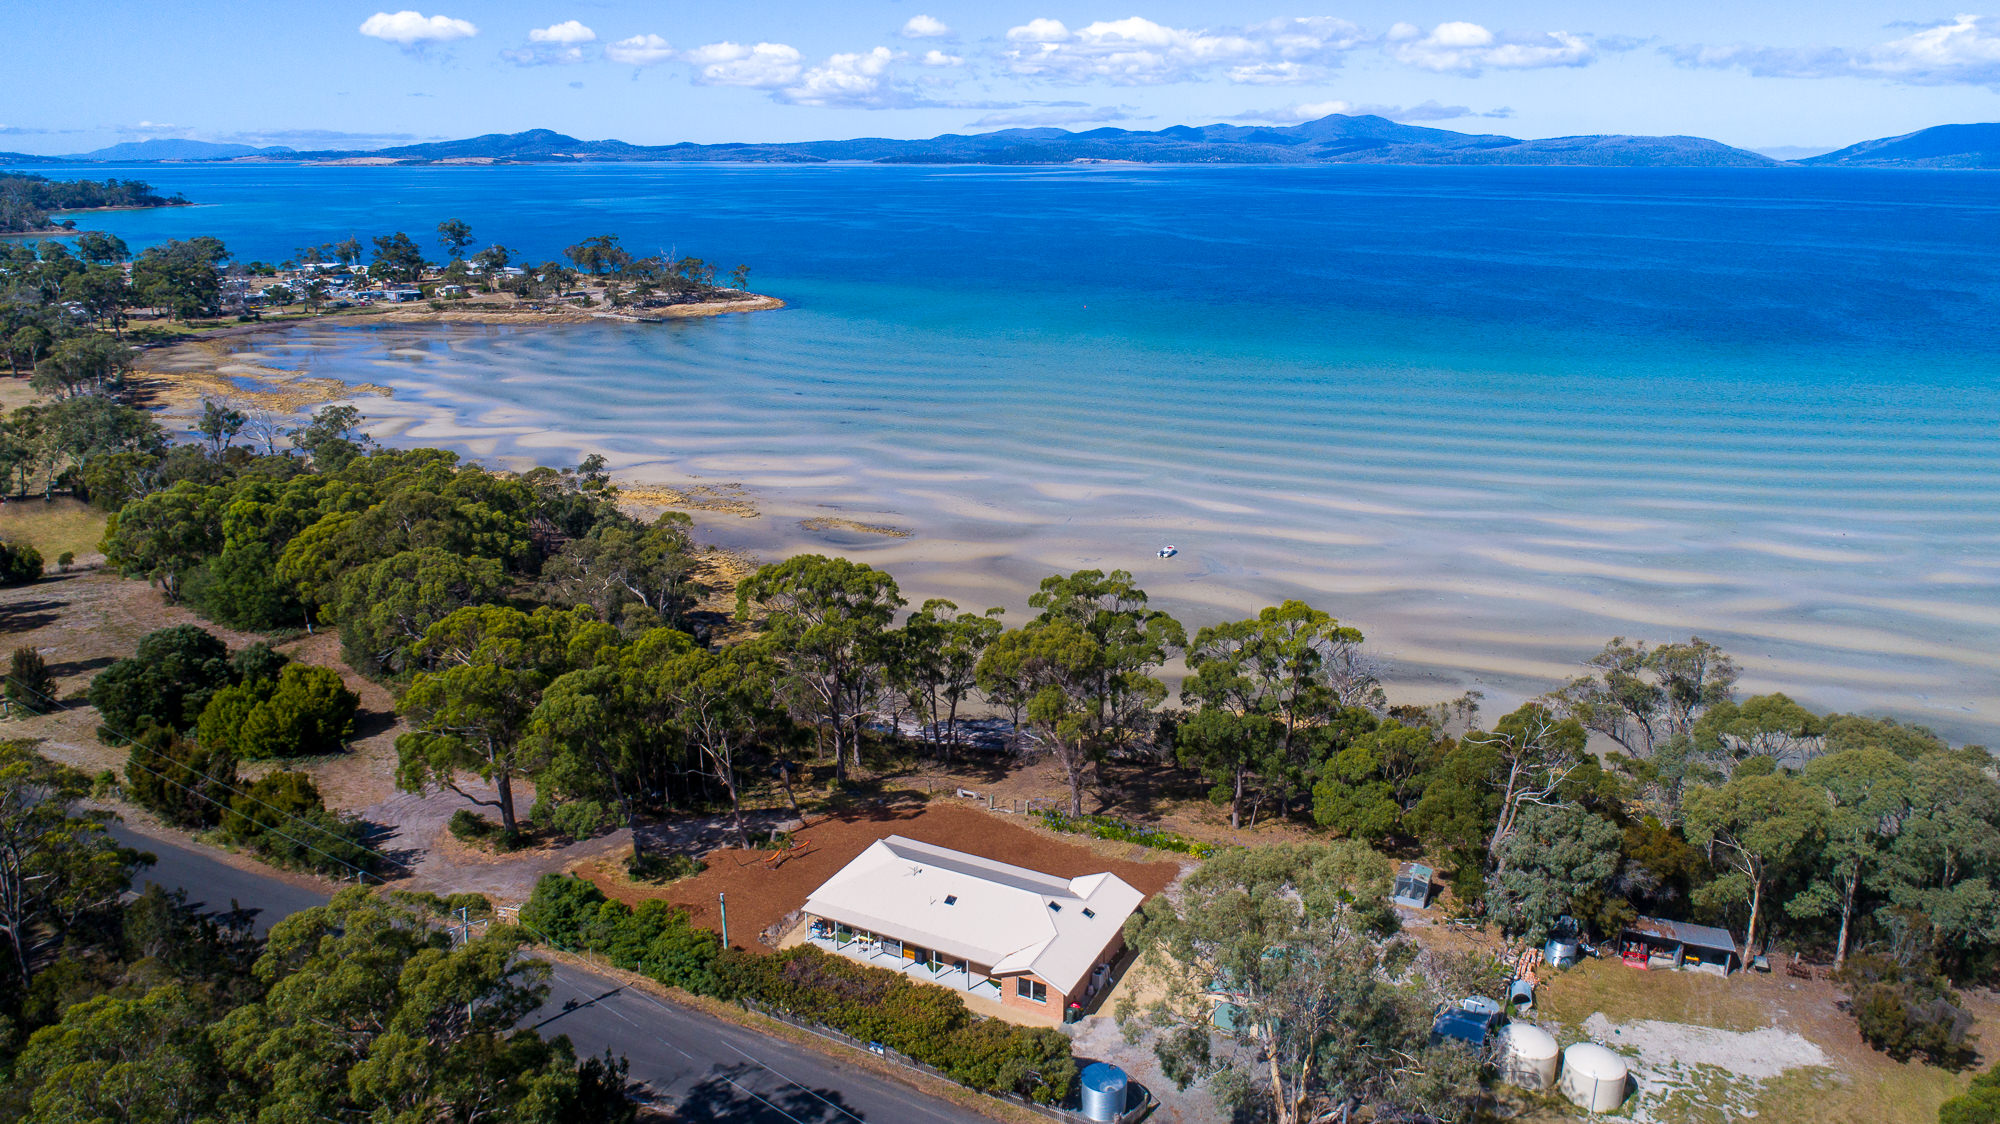 Beautiful drone photography for real estate